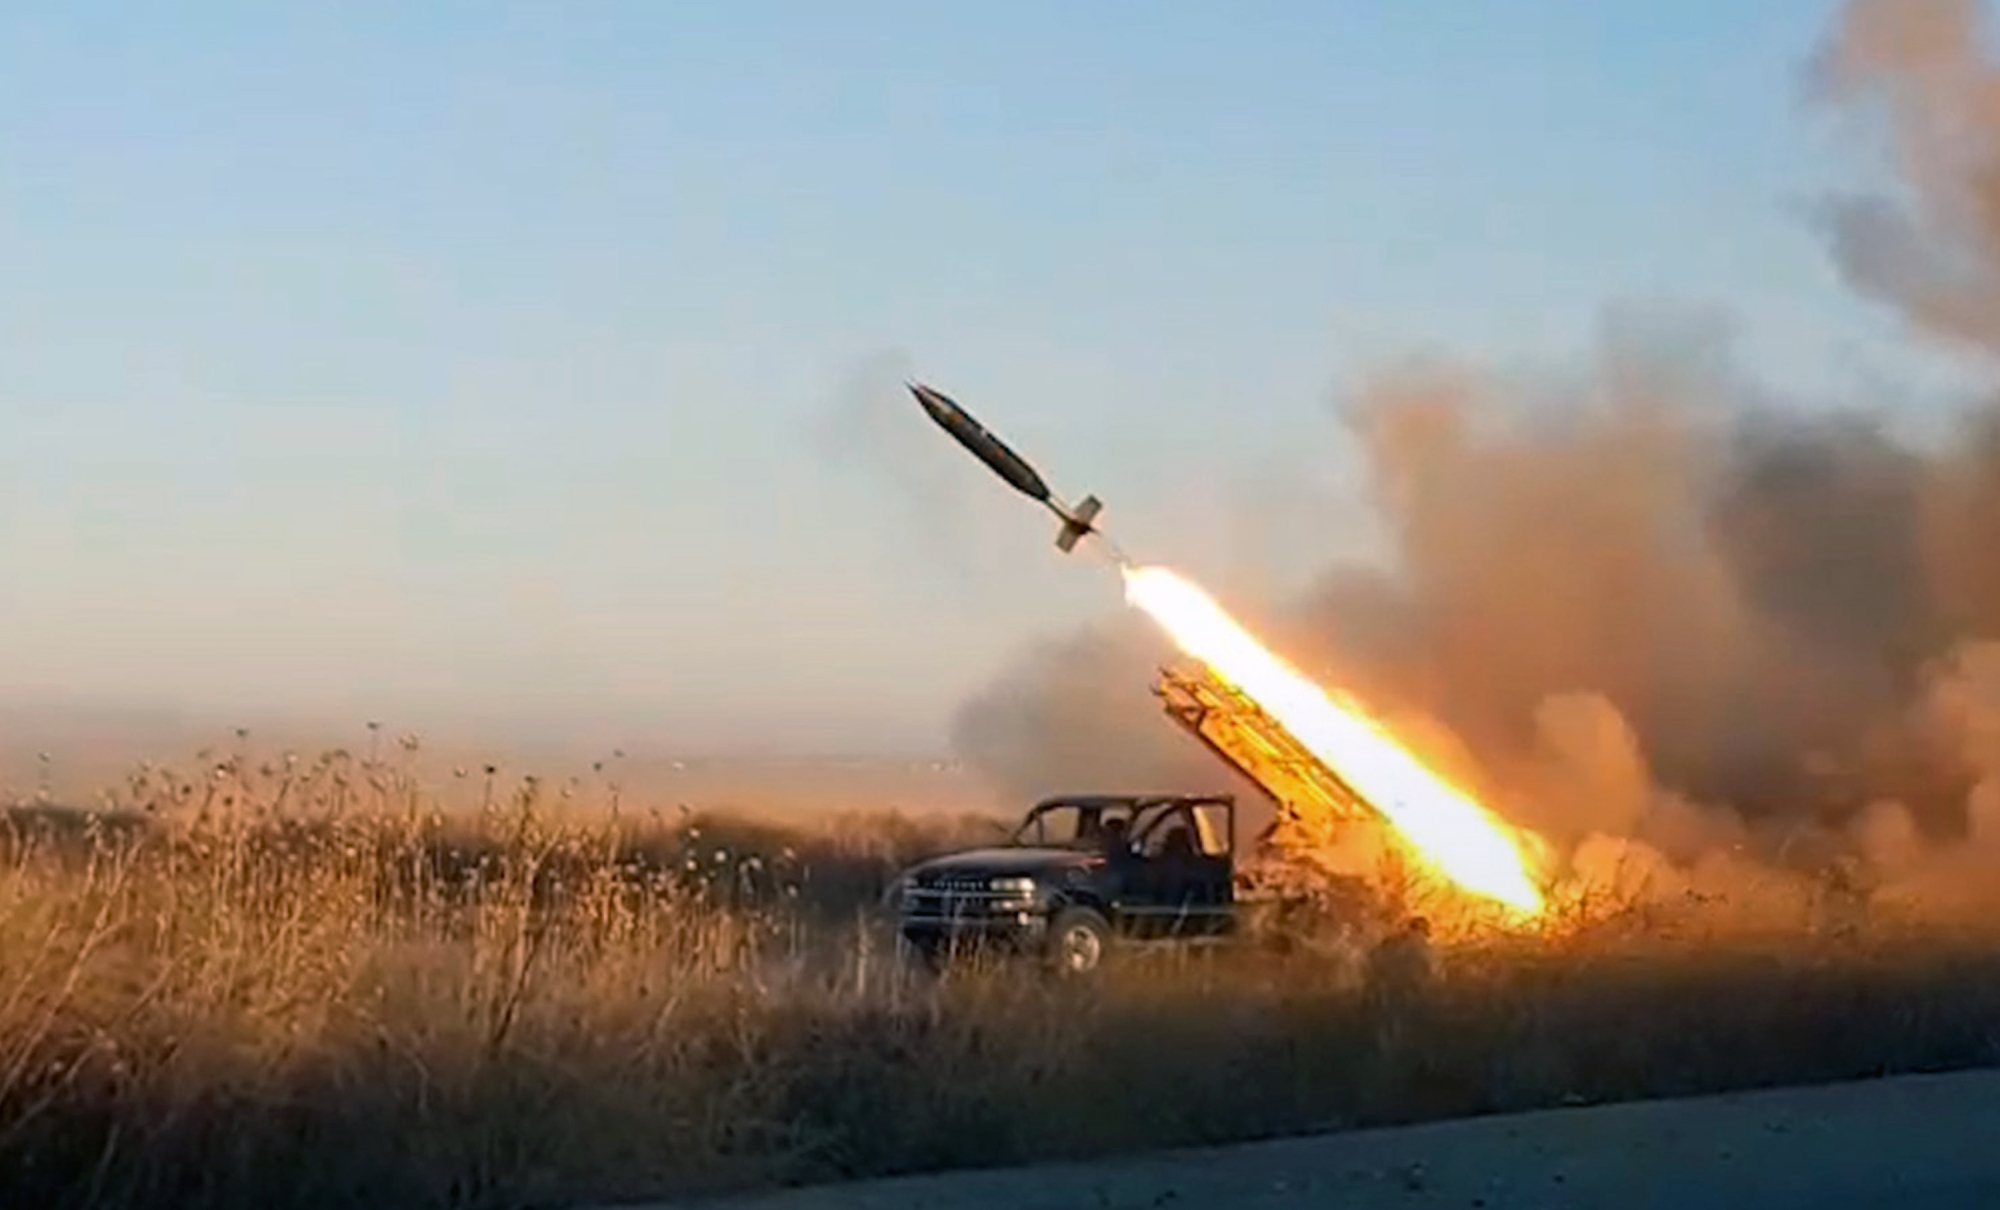 This photo provided by the Ibaa News Agency, the media arm of al-Qaida-linked Hayat Tahrir al-Sham militant group in Syria, purports to show a missile fired by the militant group against Syrian government forces position in Idlib province, Syria, Tuesday, | IBAA NEWS AGENCY / VIA AP